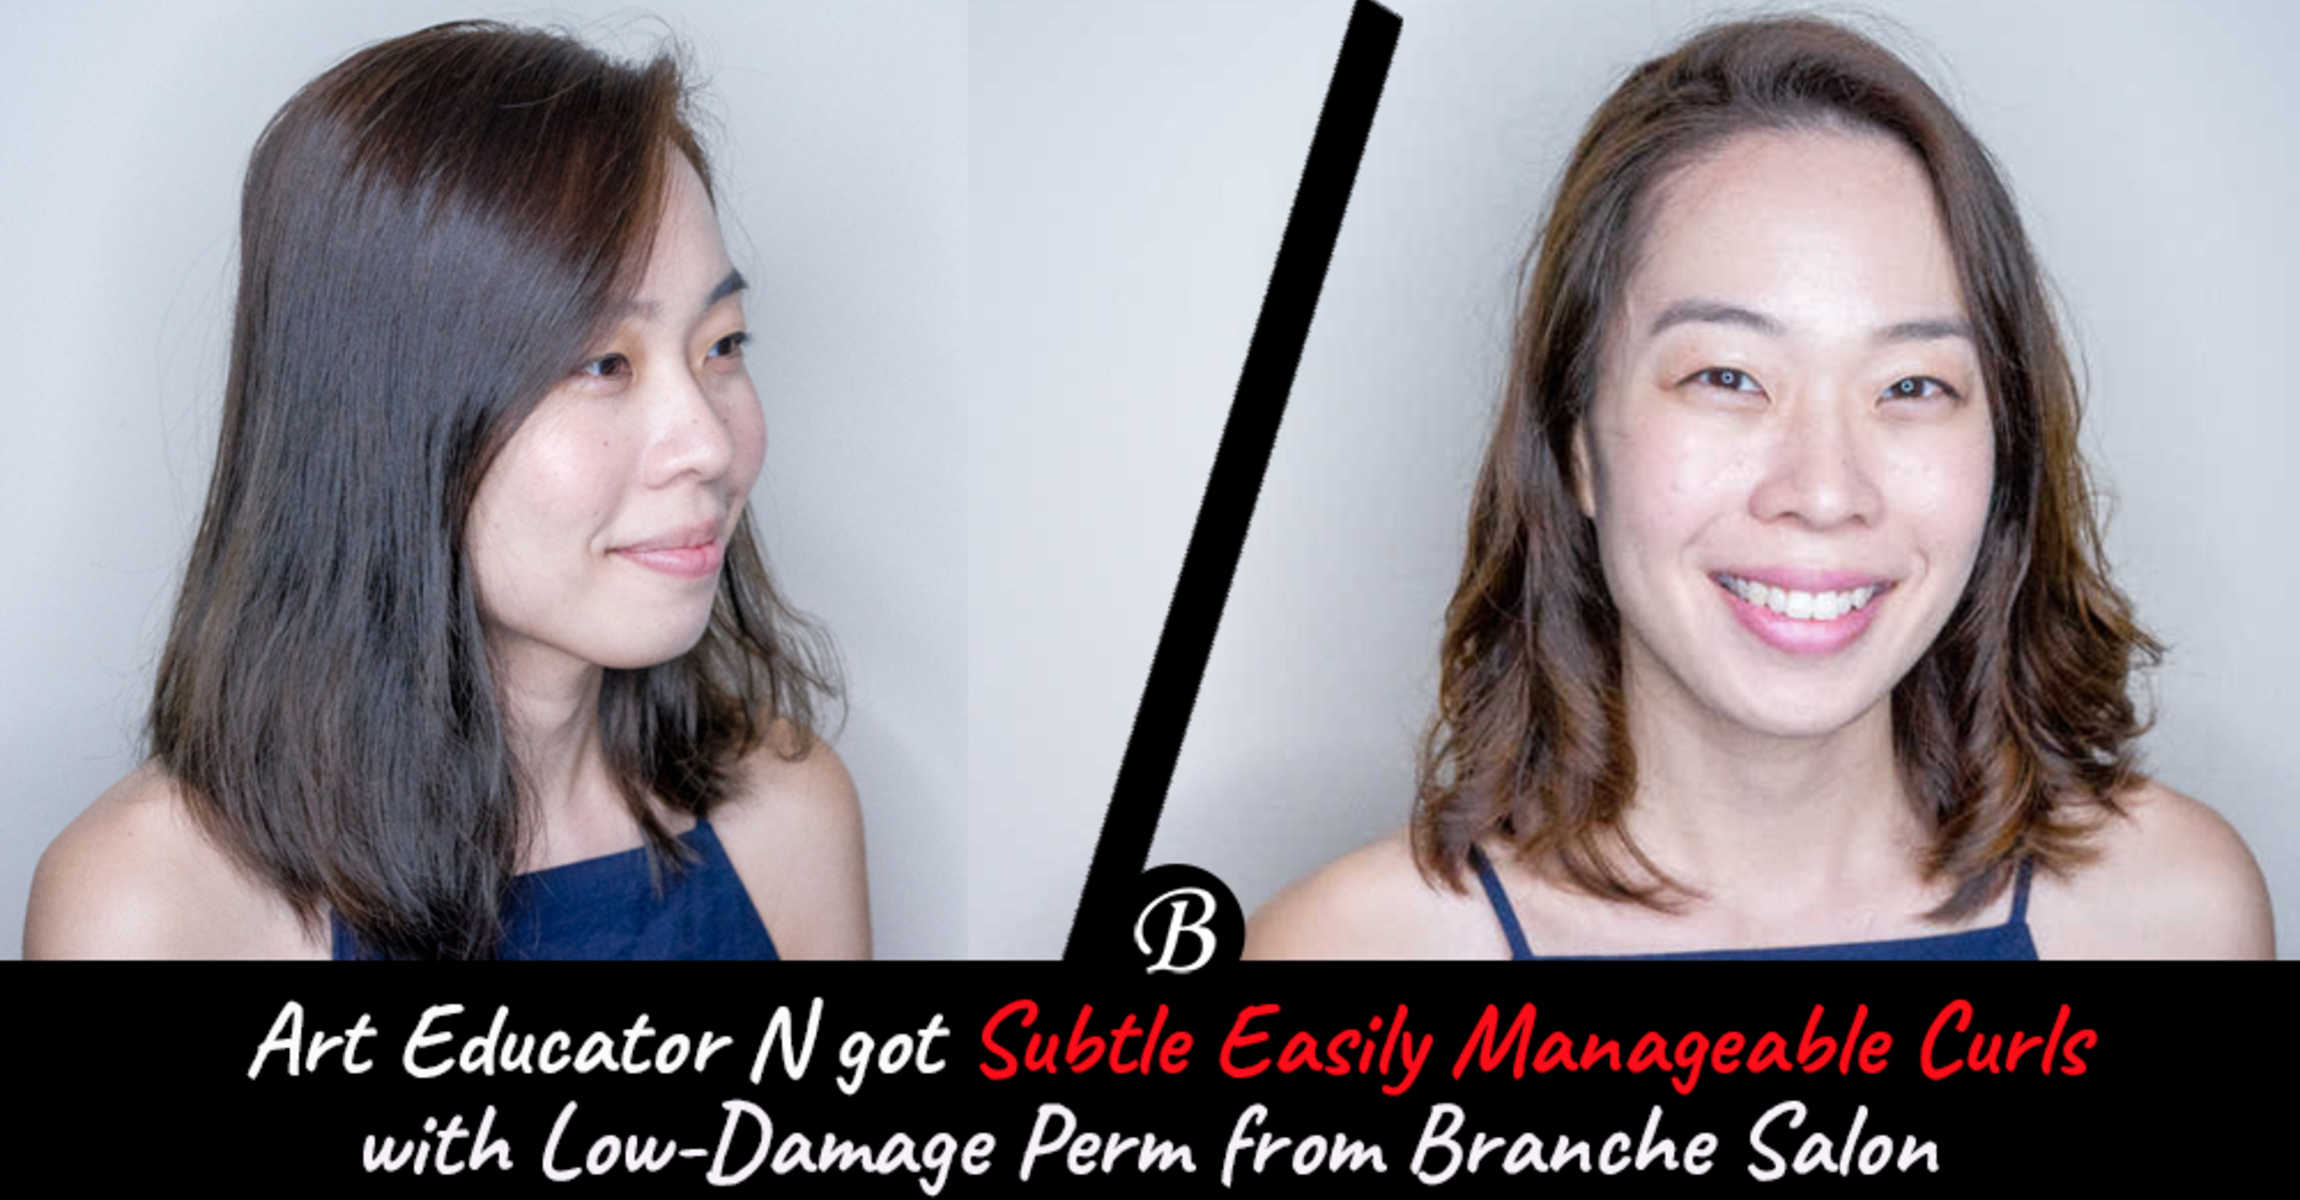 This Low-Damage Paimore Perm from Branche Salon is the Easily Manageable Spring Makeover Art Educator N Was Looking For